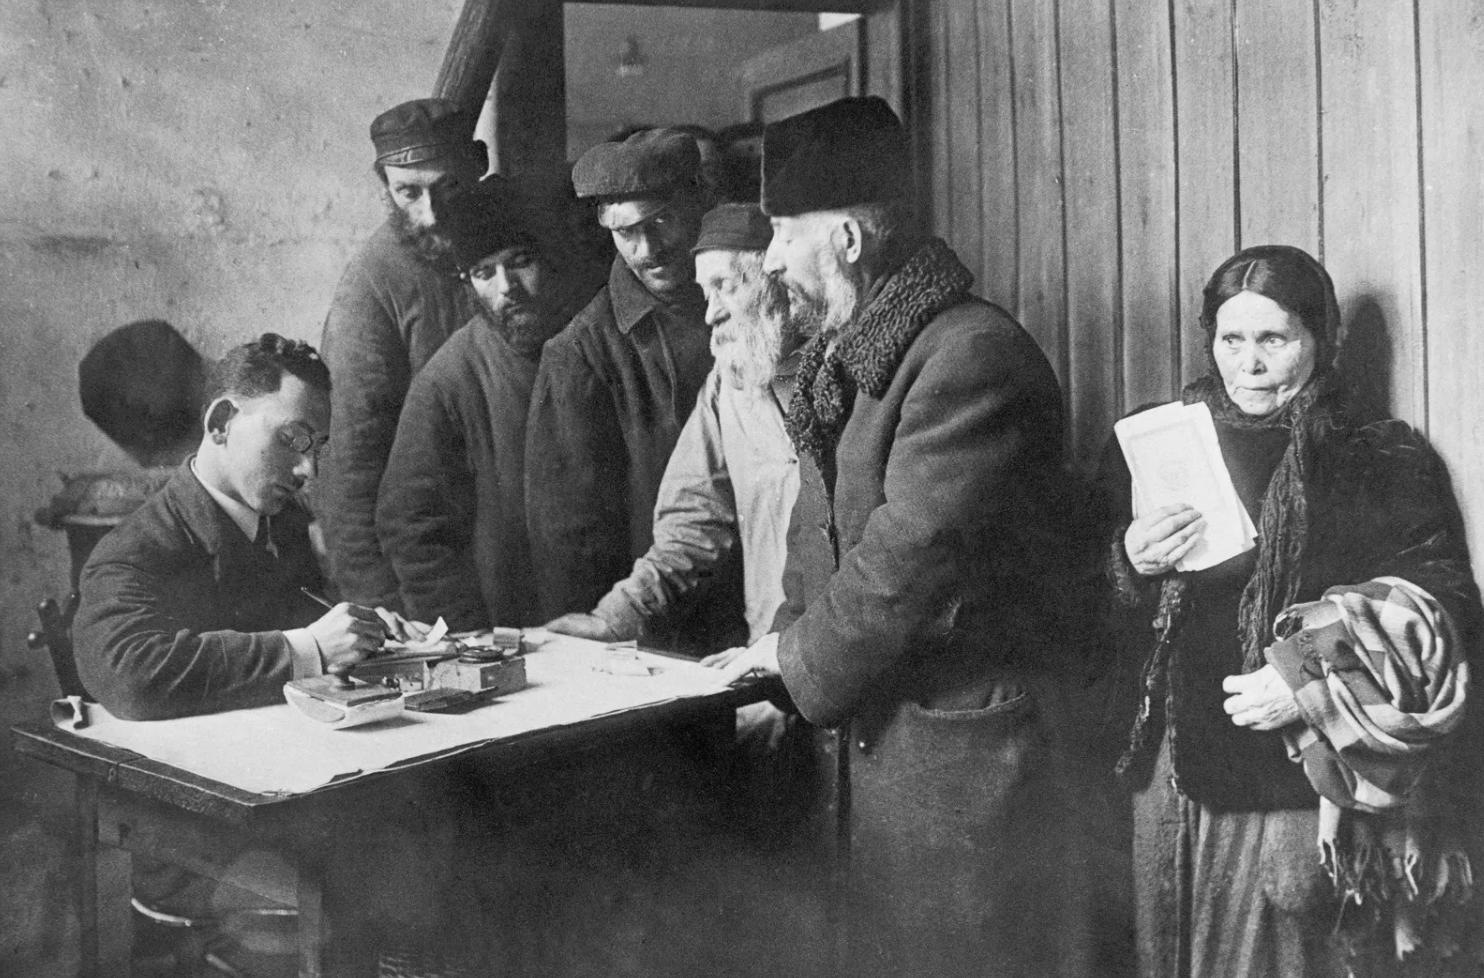 Information office of the Hebrew Immigrant Aid Society. Warsaw, 1921